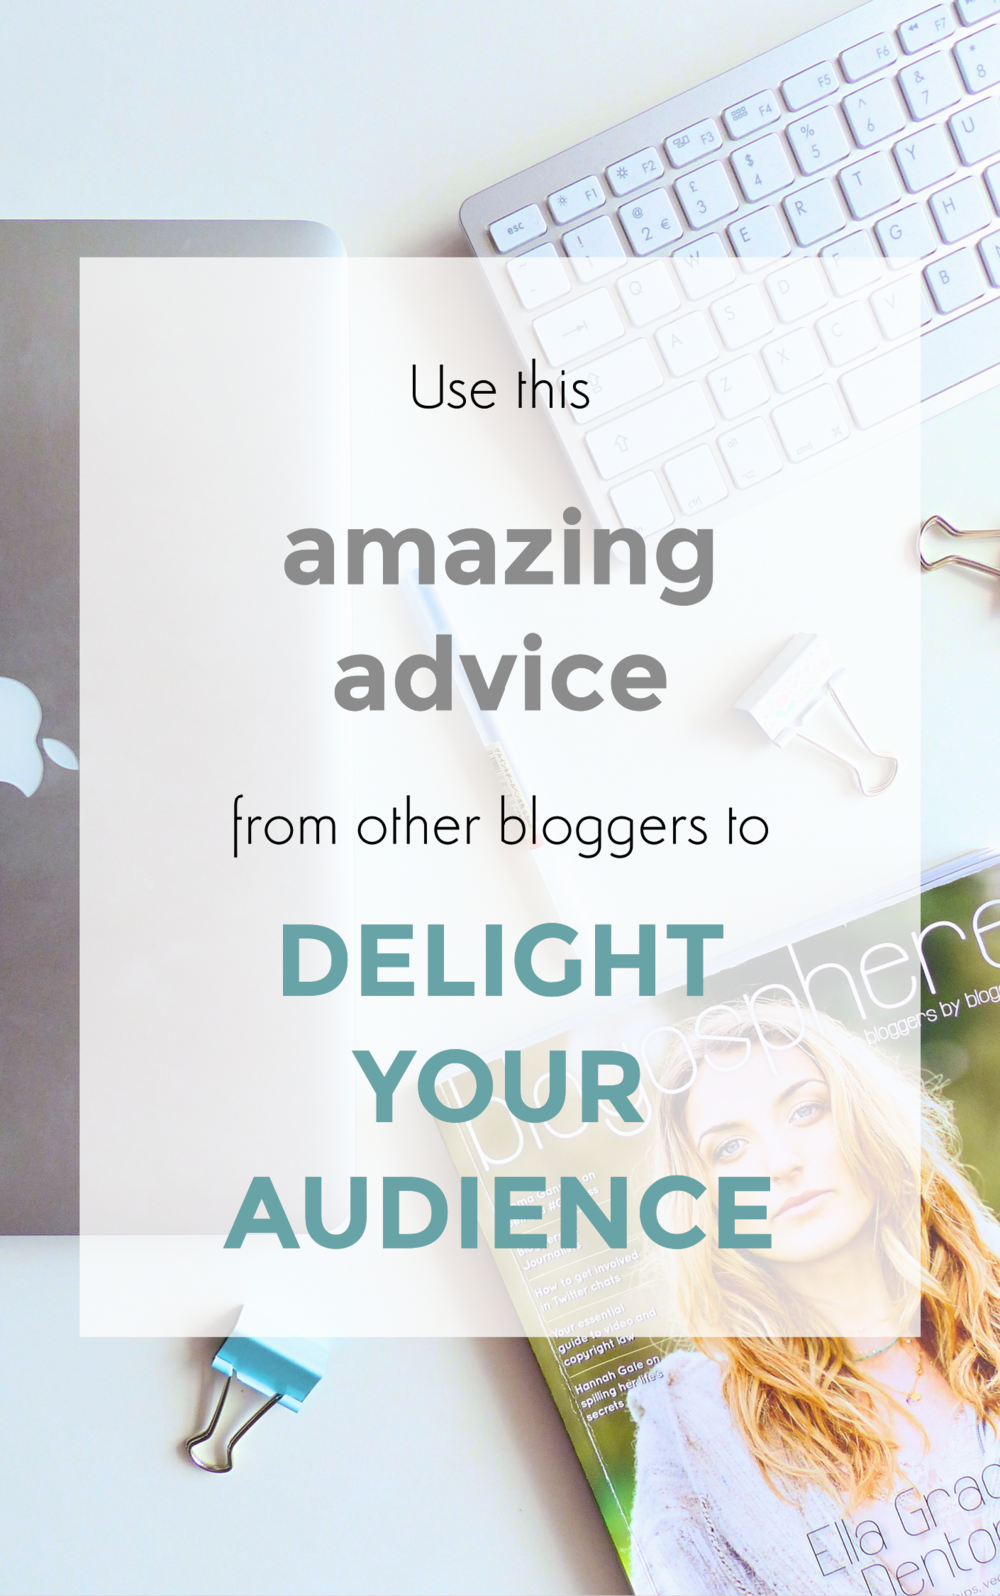 use this amazing advice from other bloggers to delight your audience